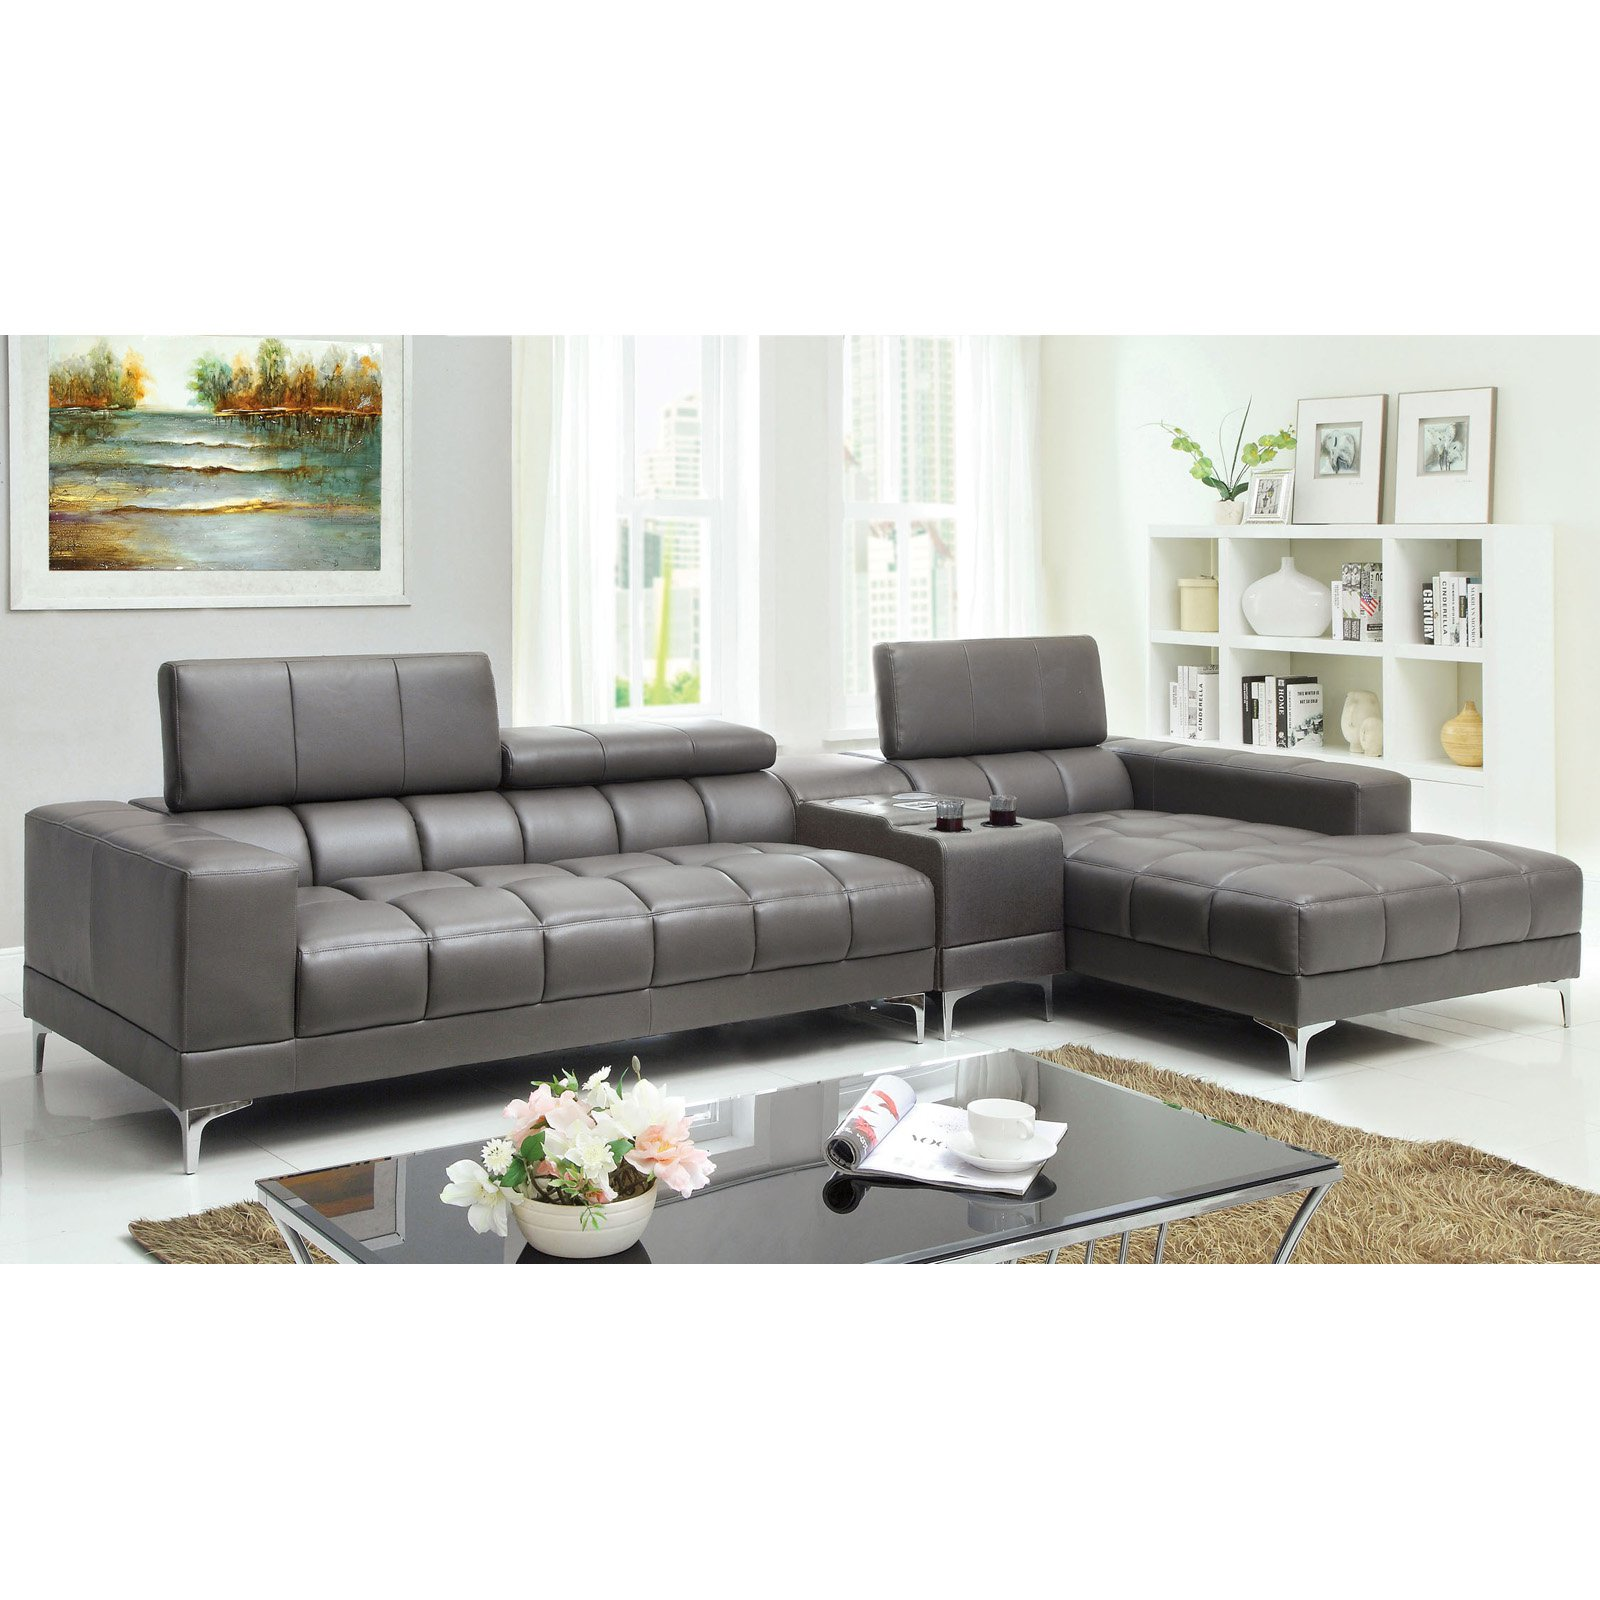 Furniture of America Riverton 2 Piece Sectional Sofa with Optional